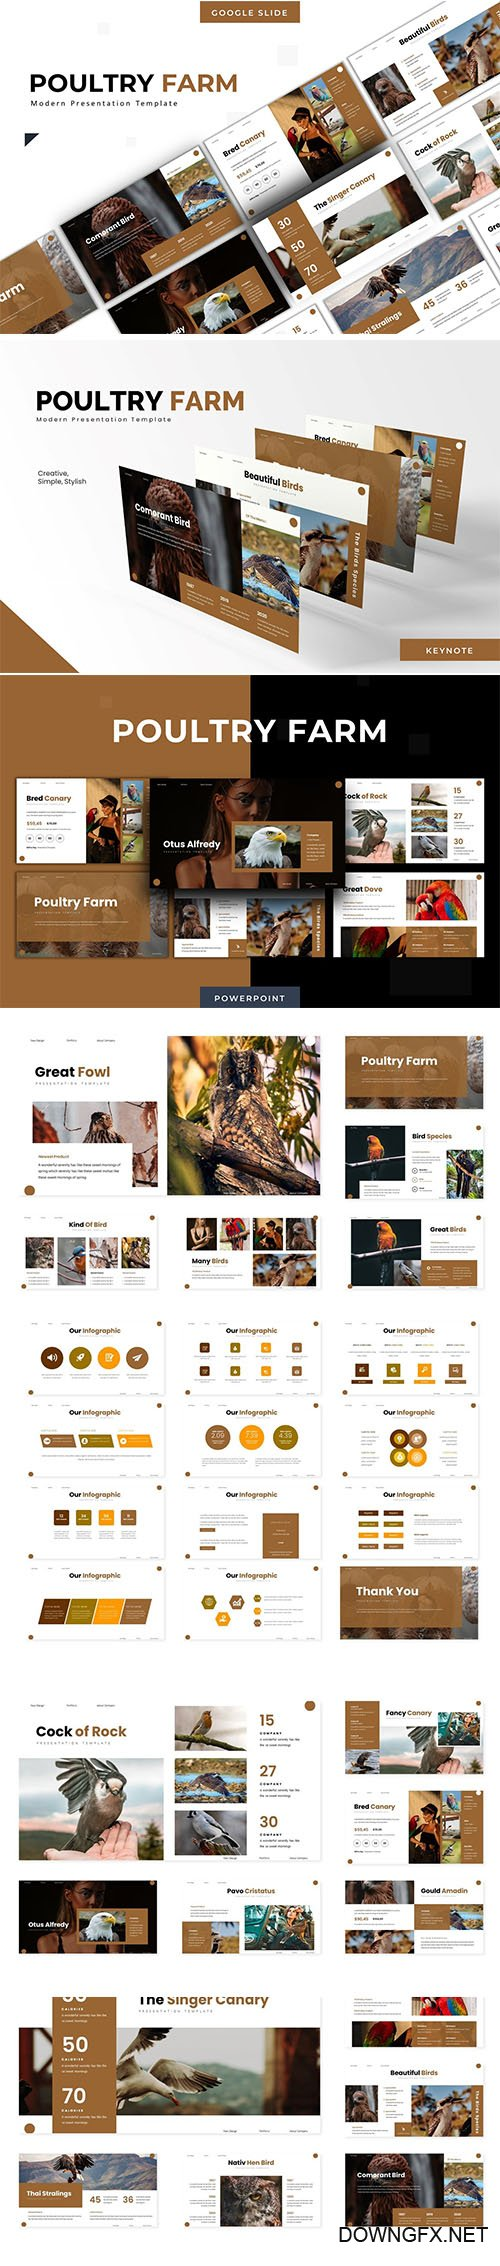 Poultry Farm - Powerpoint Template, Keynote and Google Slide Template